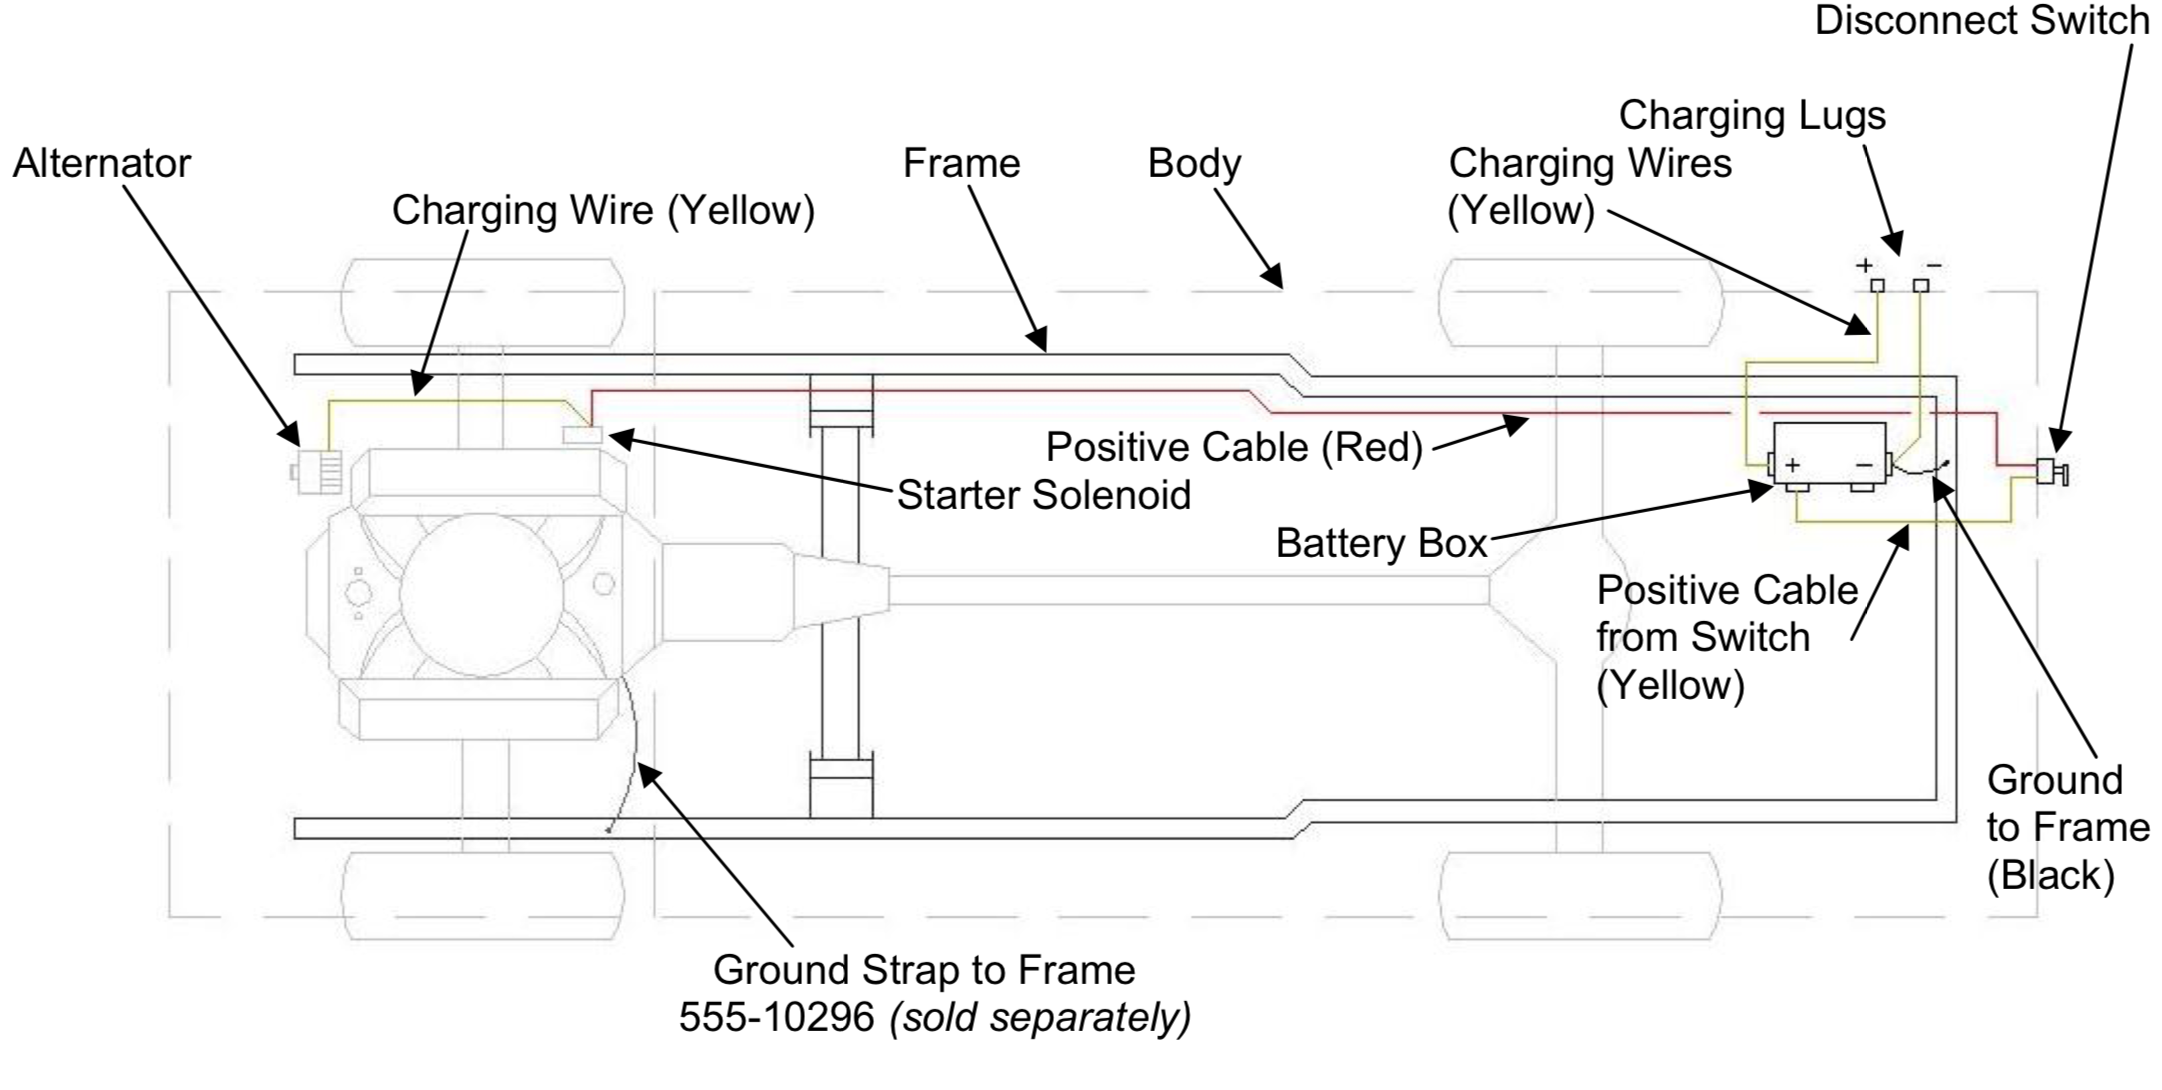 diagram for proper remote battery mount and installation